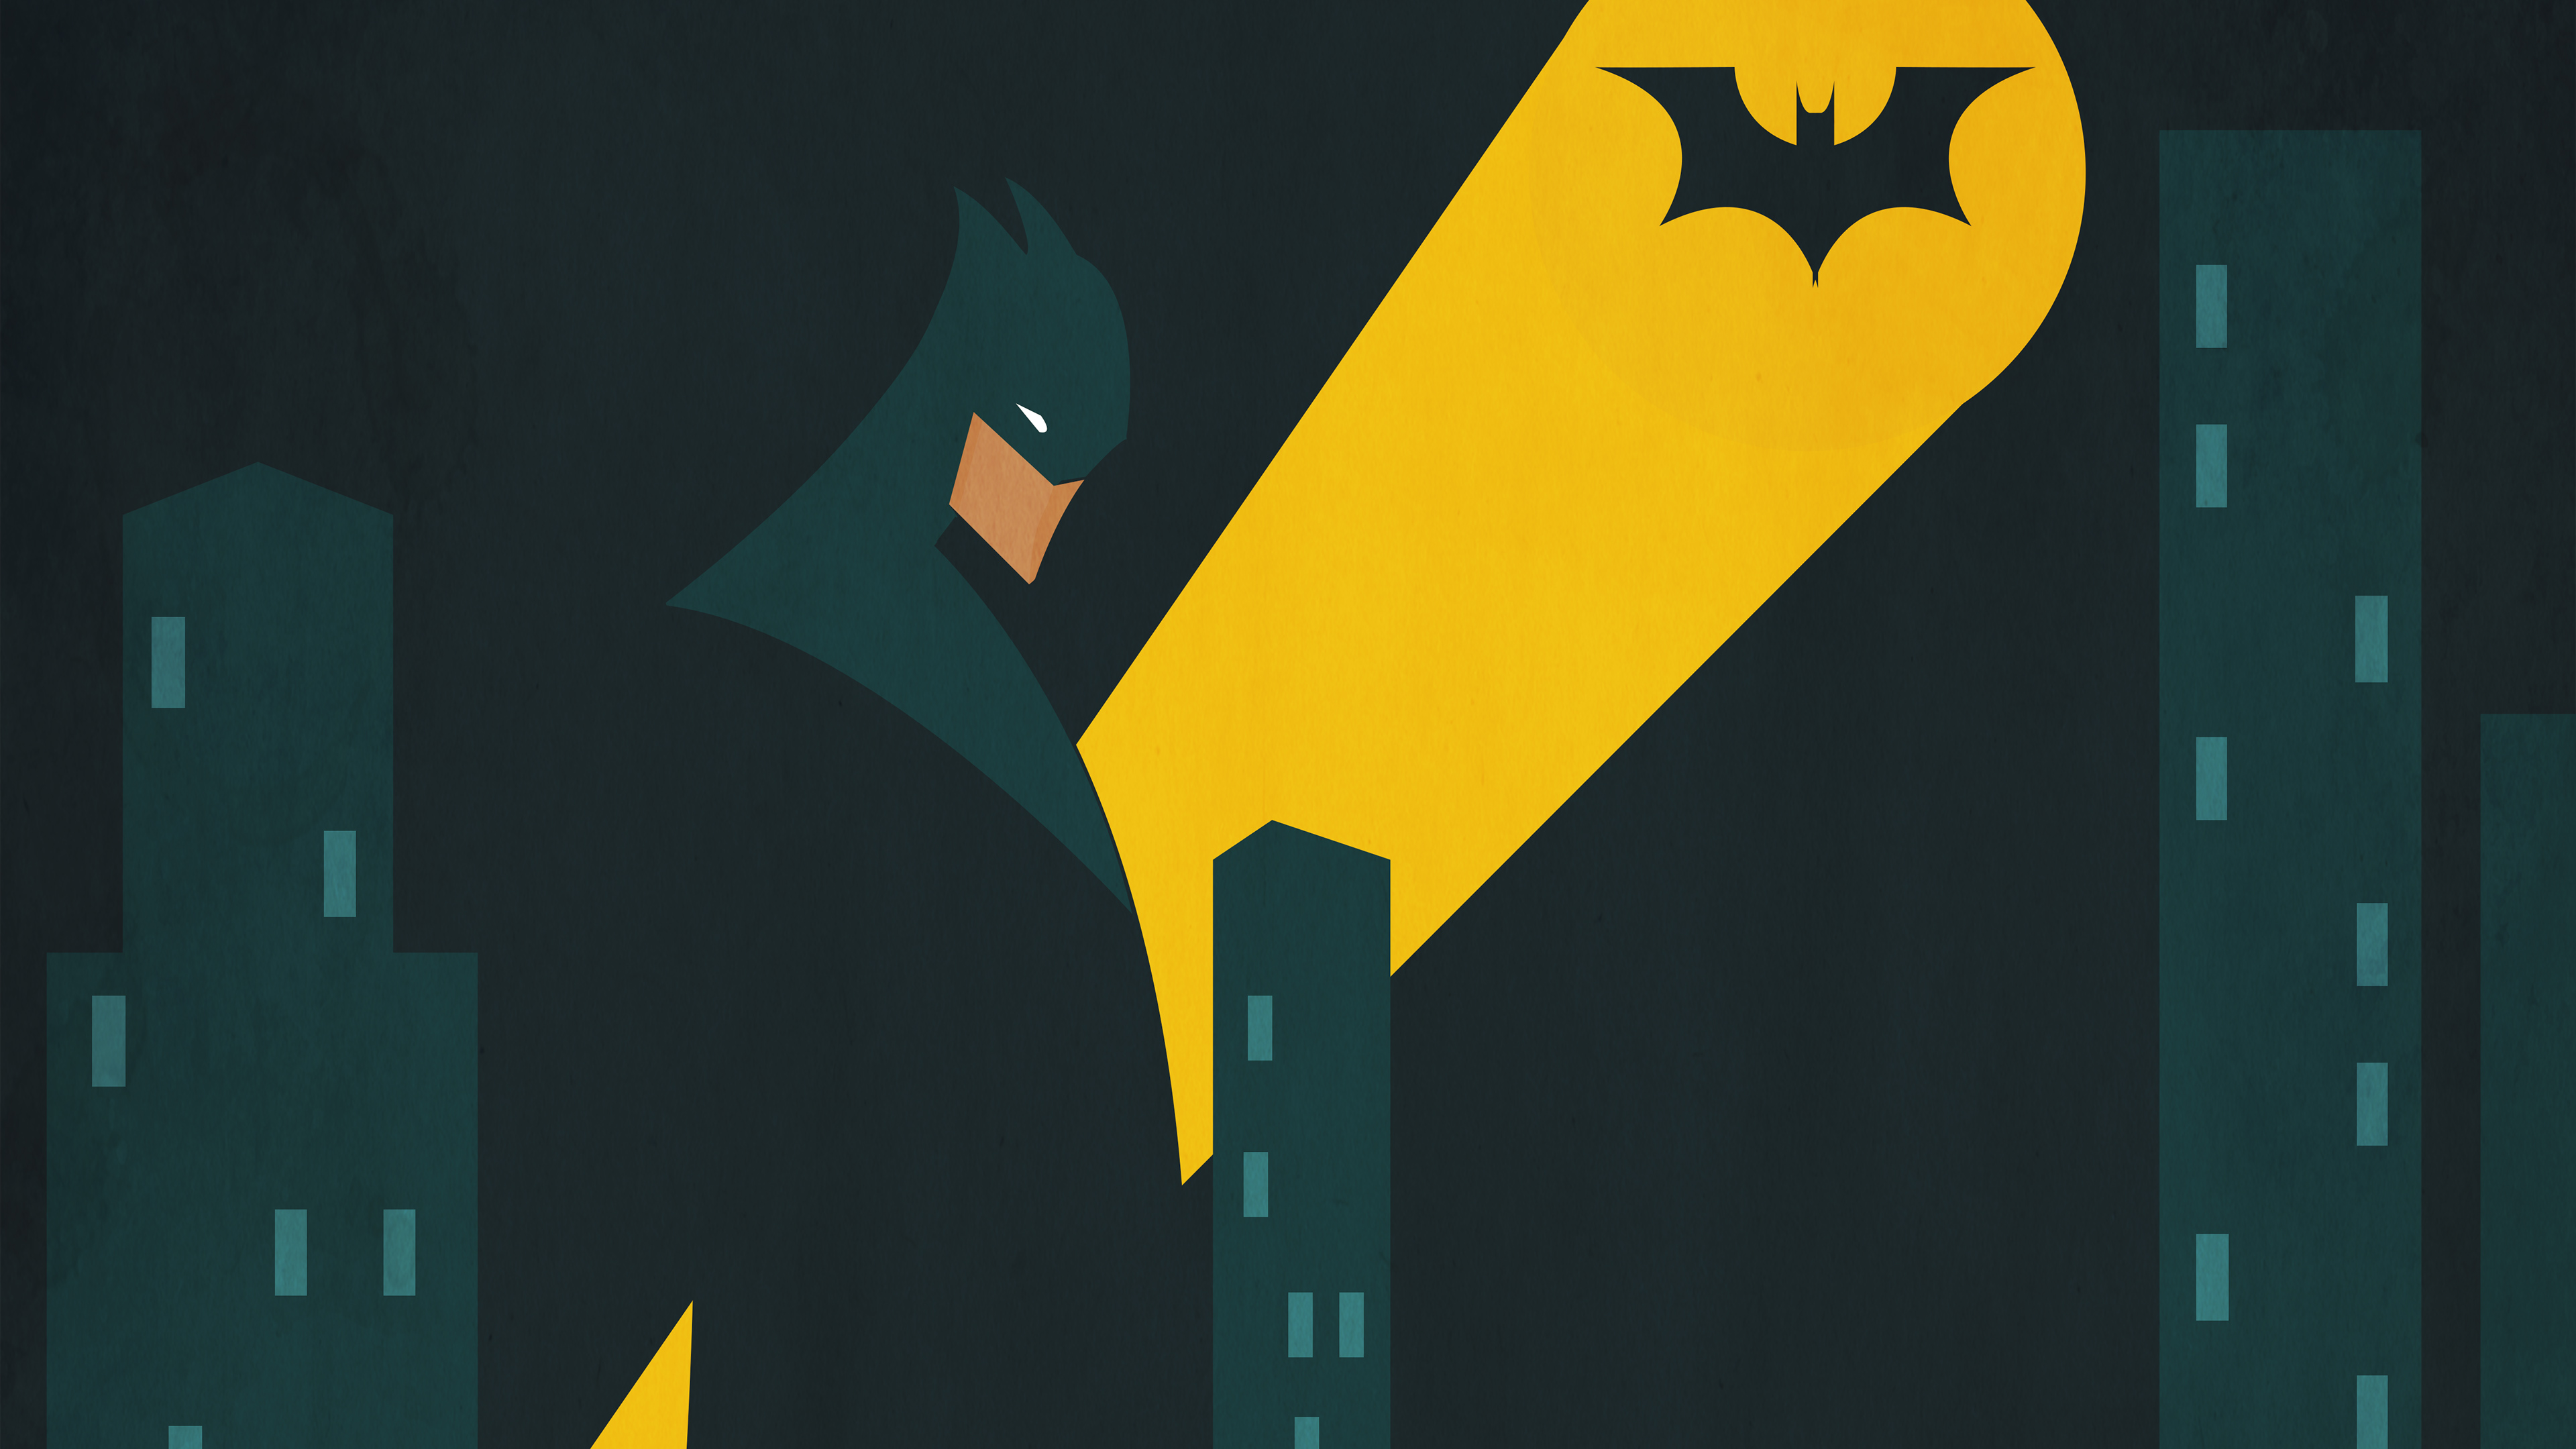 batman gotham bat signal 1541294282 - Batman Gotham Bat Signal - superheroes wallpapers, iron man wallpapers, hd-wallpapers, behance wallpapers, batman wallpapers, artwork wallpapers, artist wallpapers, 4k-wallpapers